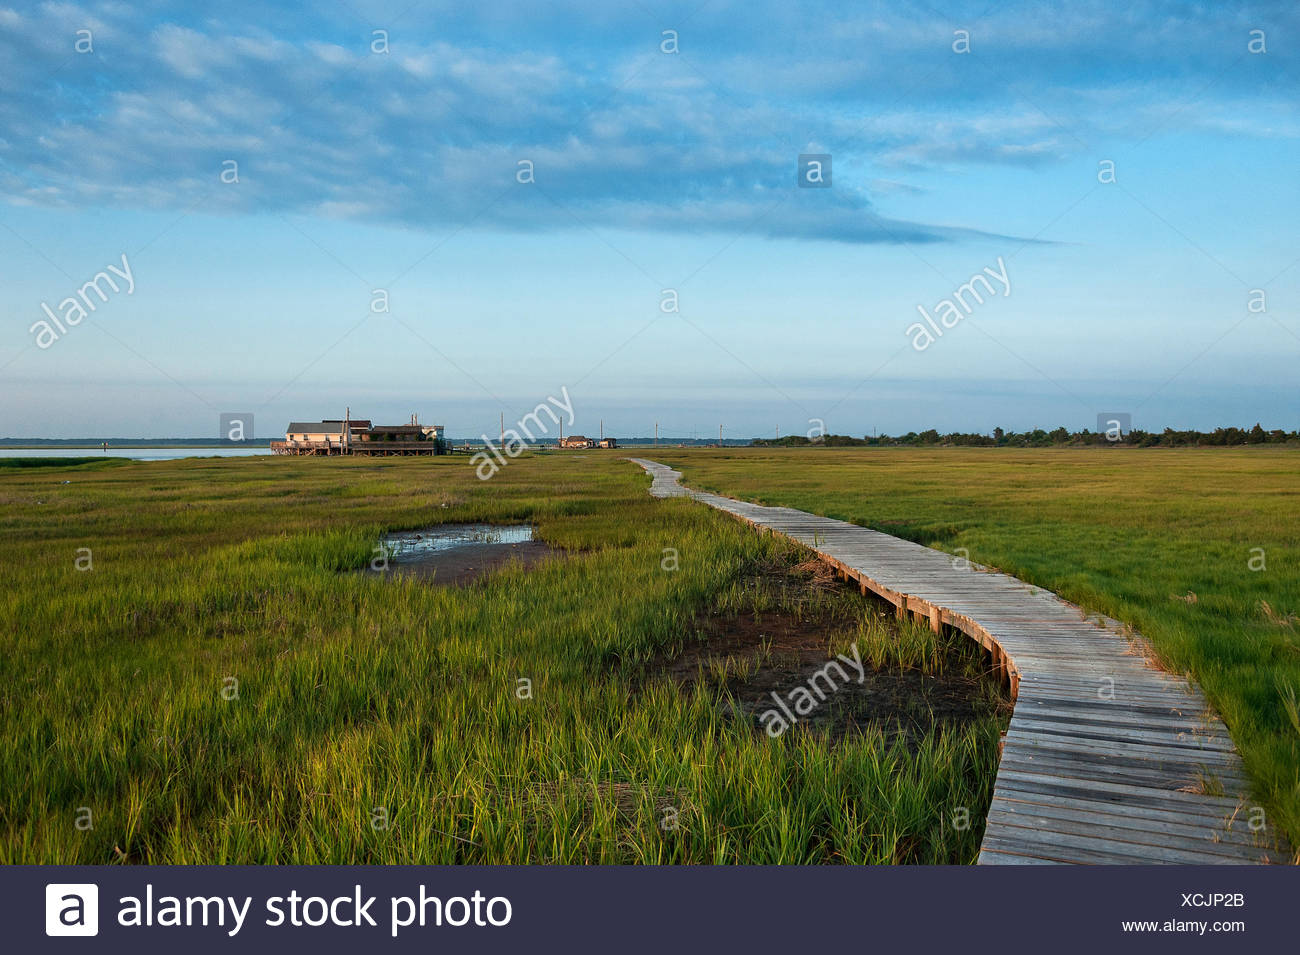 Remote beach shack located on a bay salt marsh, New Jersey, USA. - Stock Image